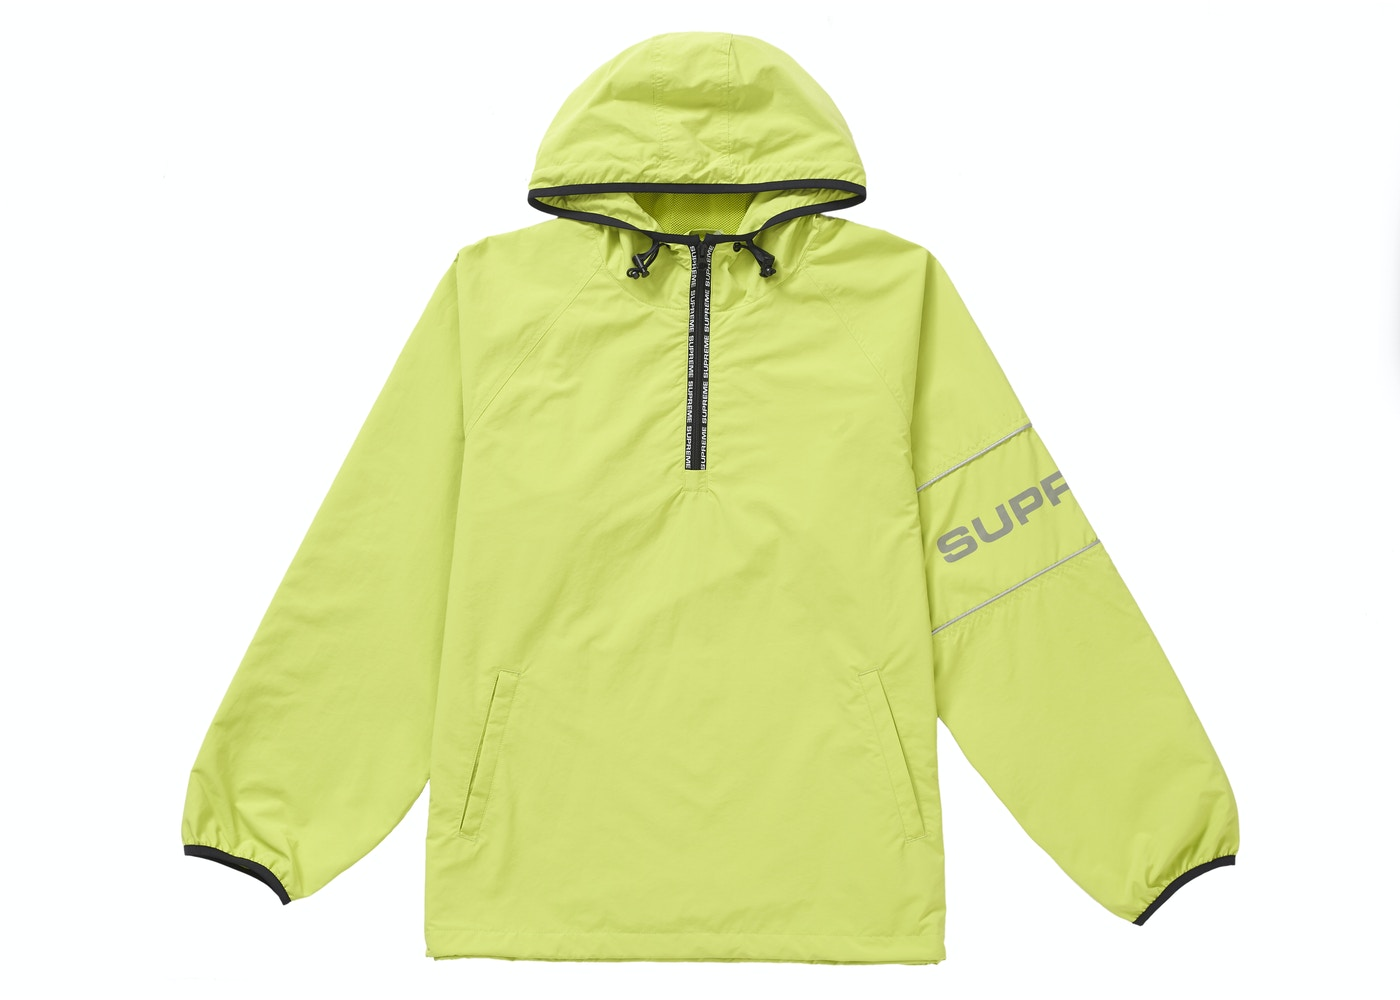 6c9c2080 Supreme Nylon Ripstop Hooded Pullover Lime - SS19